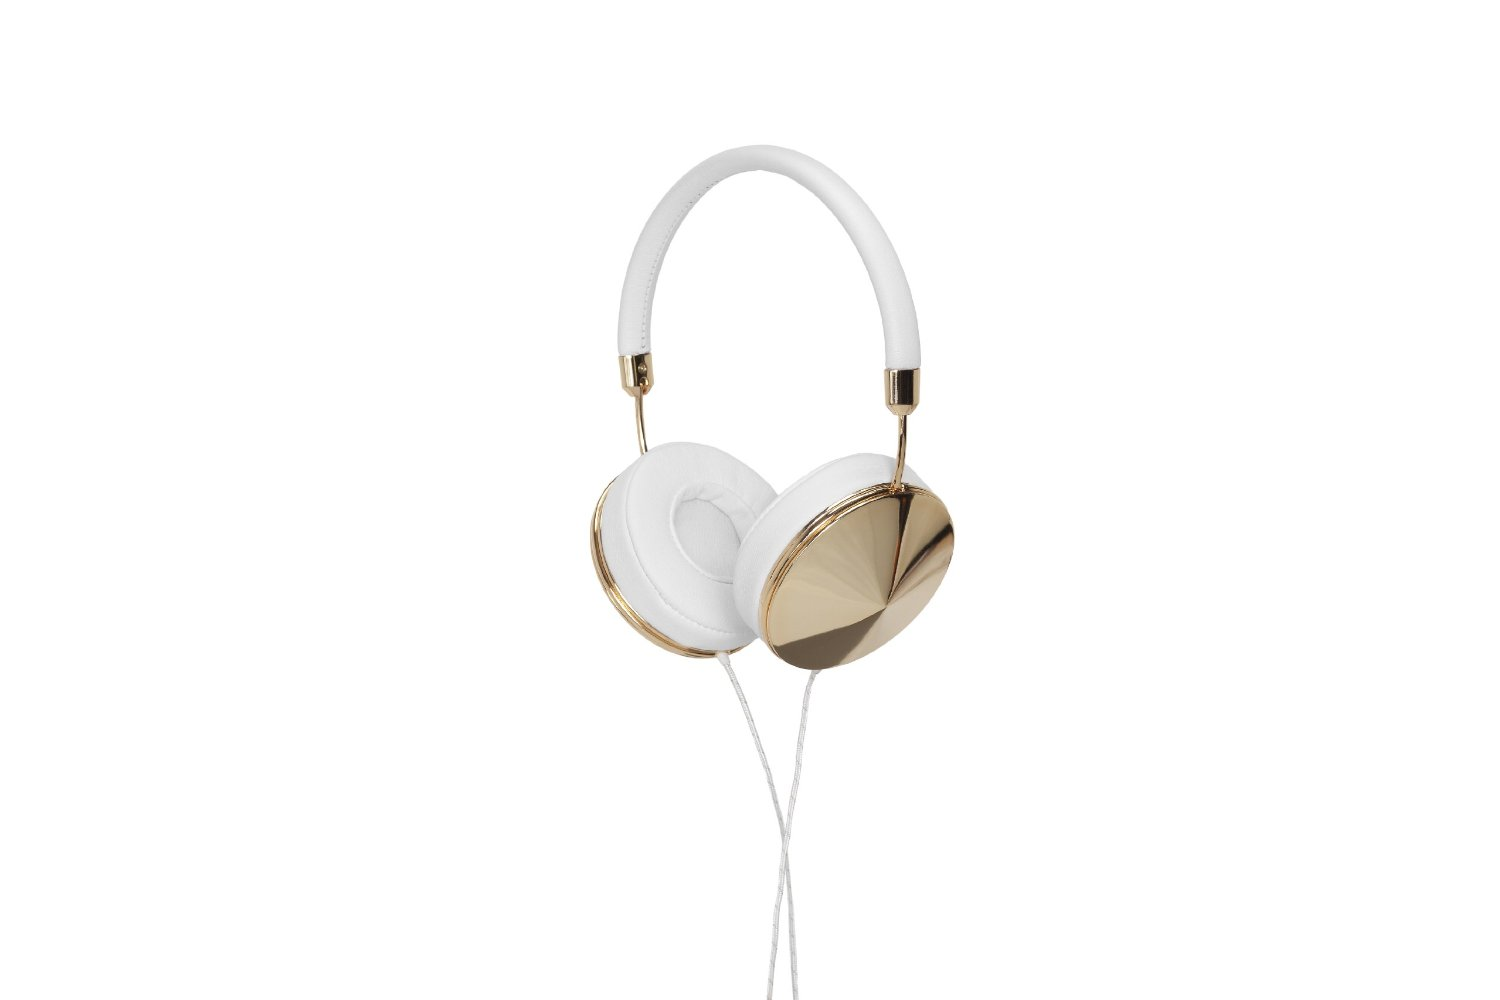 Amazon.com: frends taylor g/w taylor headphones, gold and white: electronics